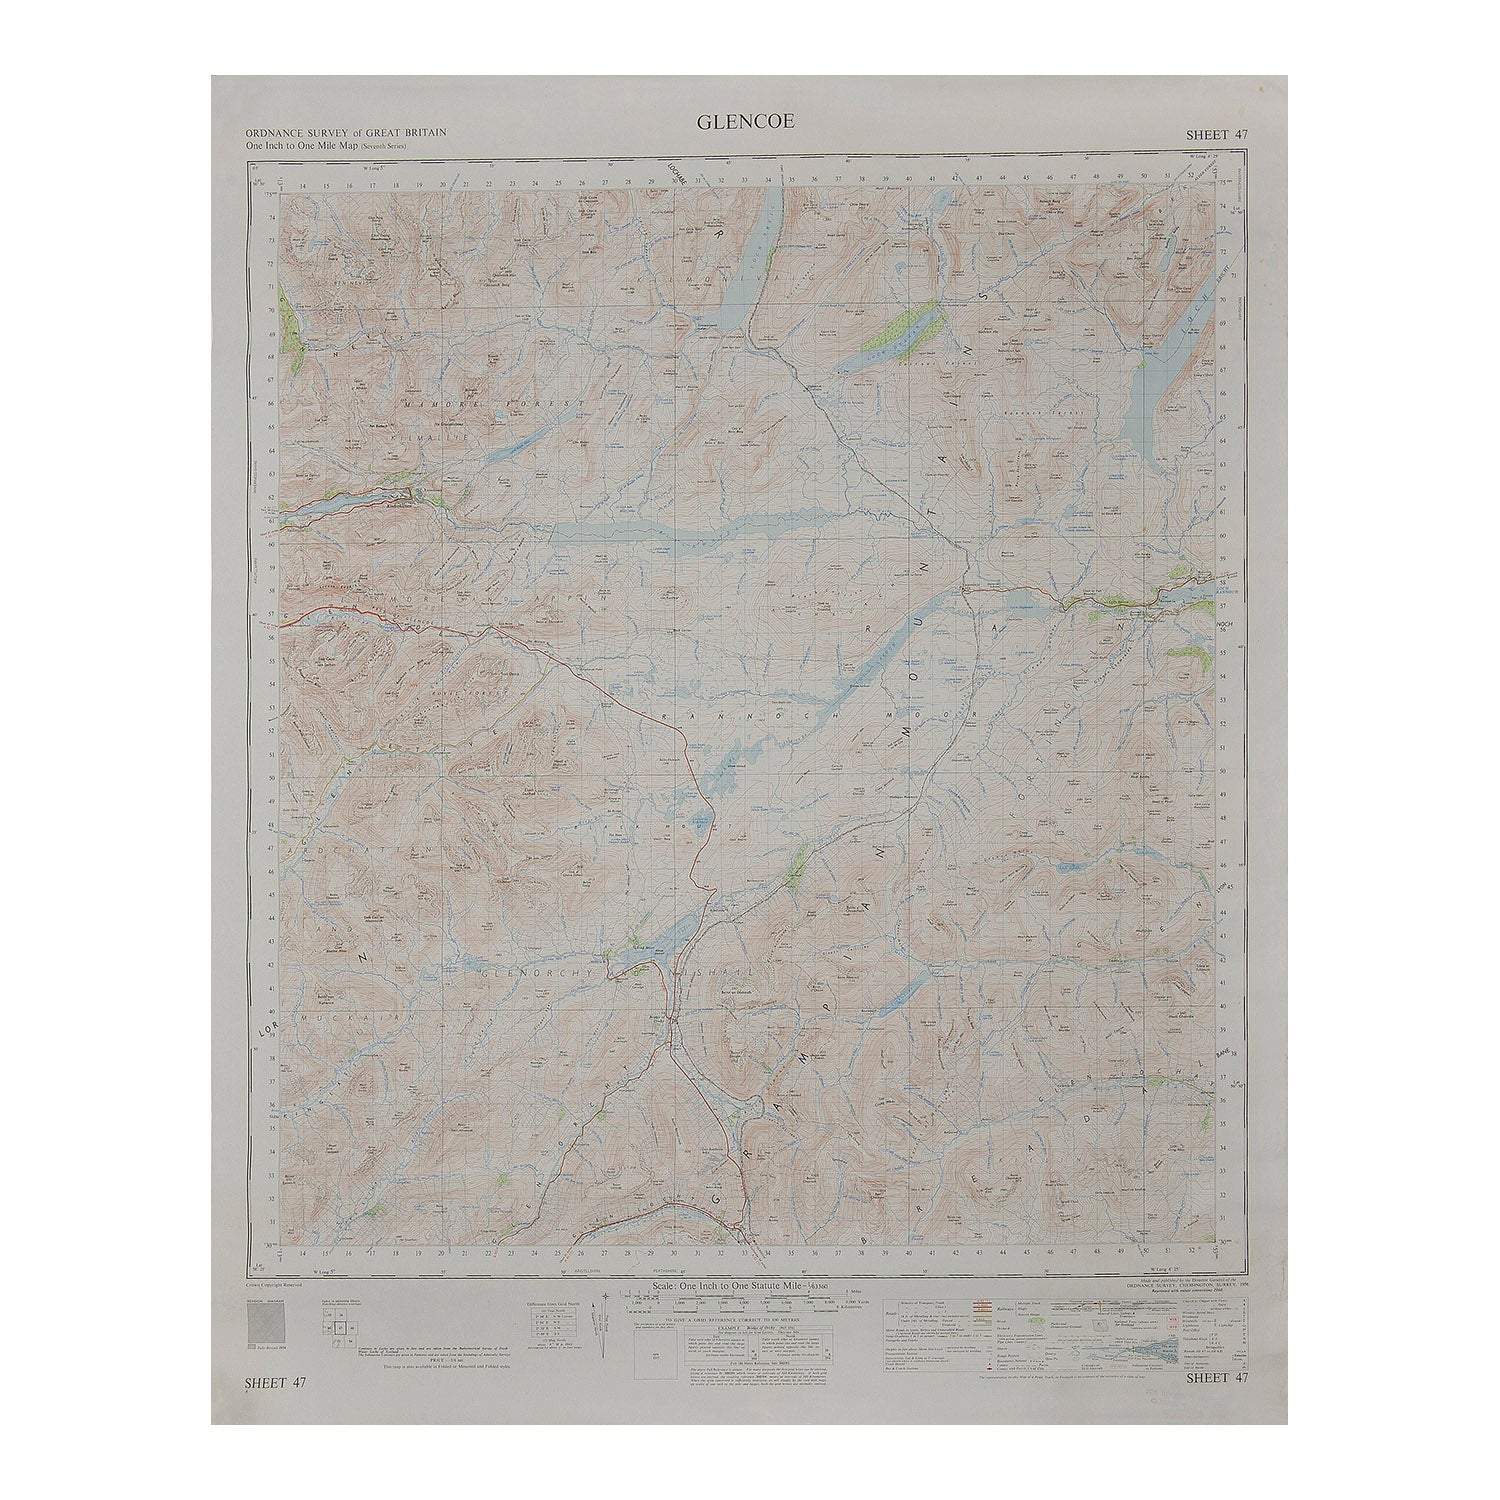 Glencoe Ordnance Survey map 1 inch to 1 mile